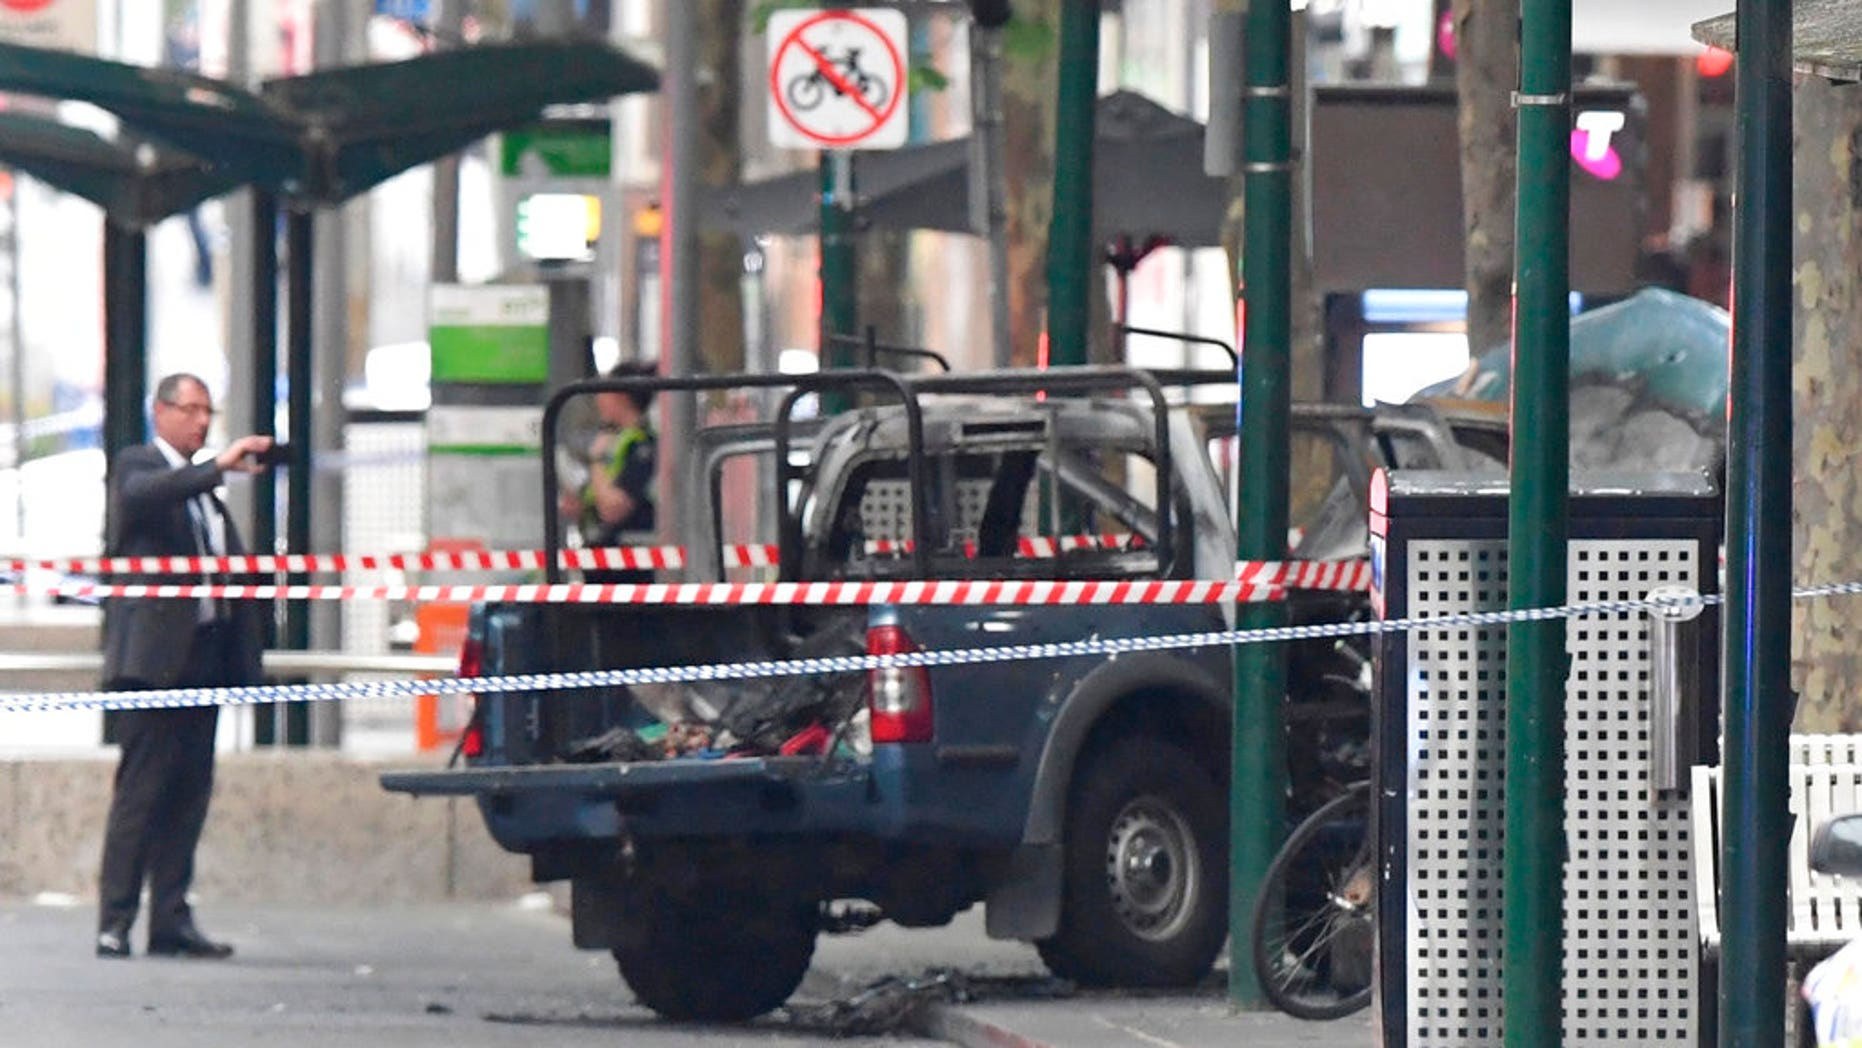 A burnt out vehicle is seen on Bourke Street in Melbourne, Friday, Nov. 9, 2018. A knife-wielding man stabbed two people, one fatally, in Australia's second-largest city last Friday in an attack likely linked to terrorism, police said.